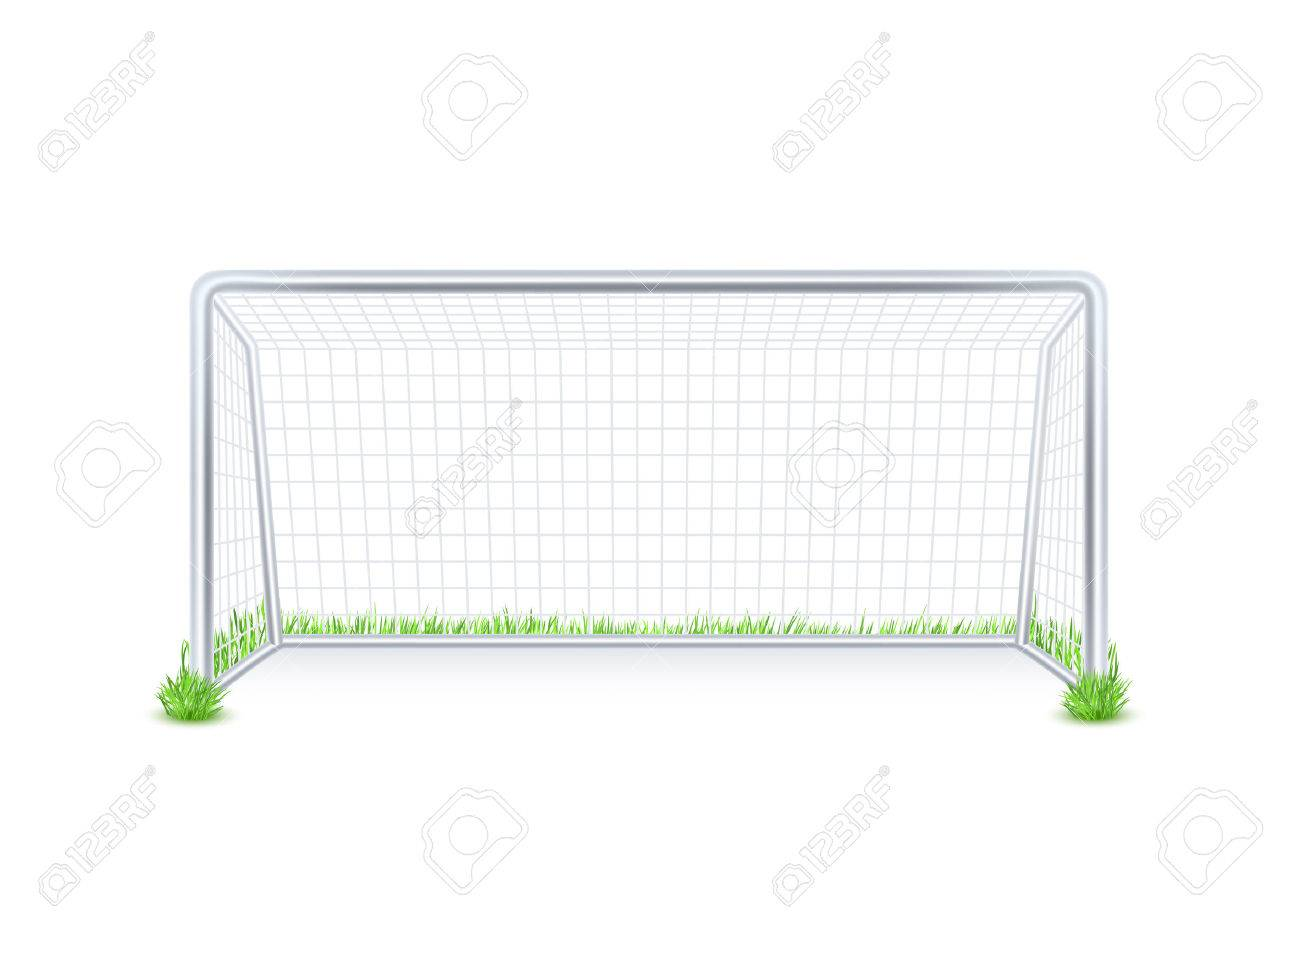 Outdoor soccer football game goal metal gate with white net on grass background print abstract vector illustration - 51154673